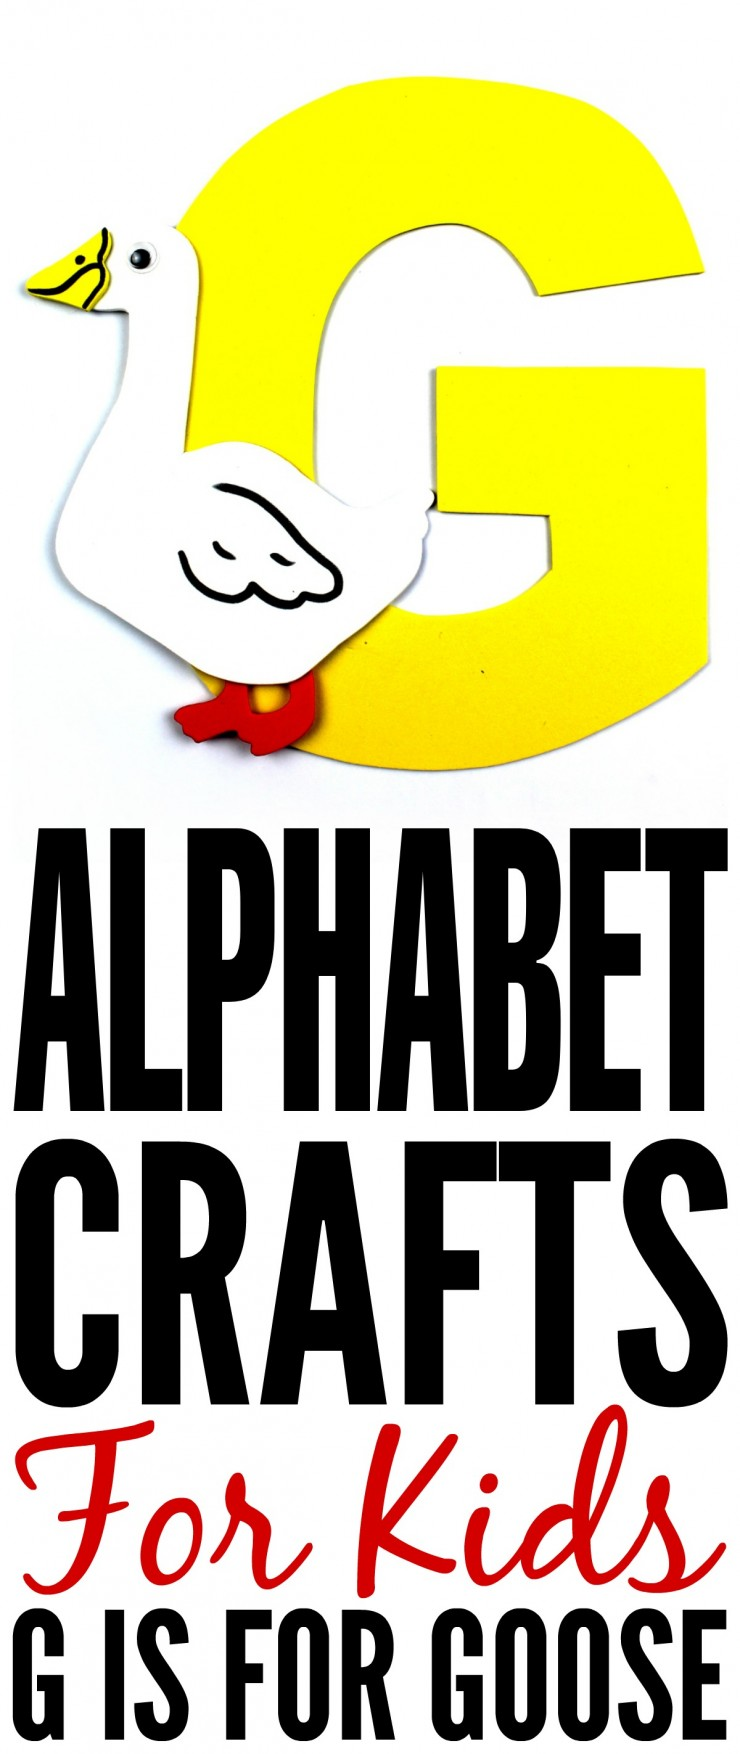 This week is my series of ABCs kids crafts featuring the Alphabet, we are doing a G is for Goose craft. These Alphabet Crafts For Kids are a fun way to introduce your child to the alphabet.